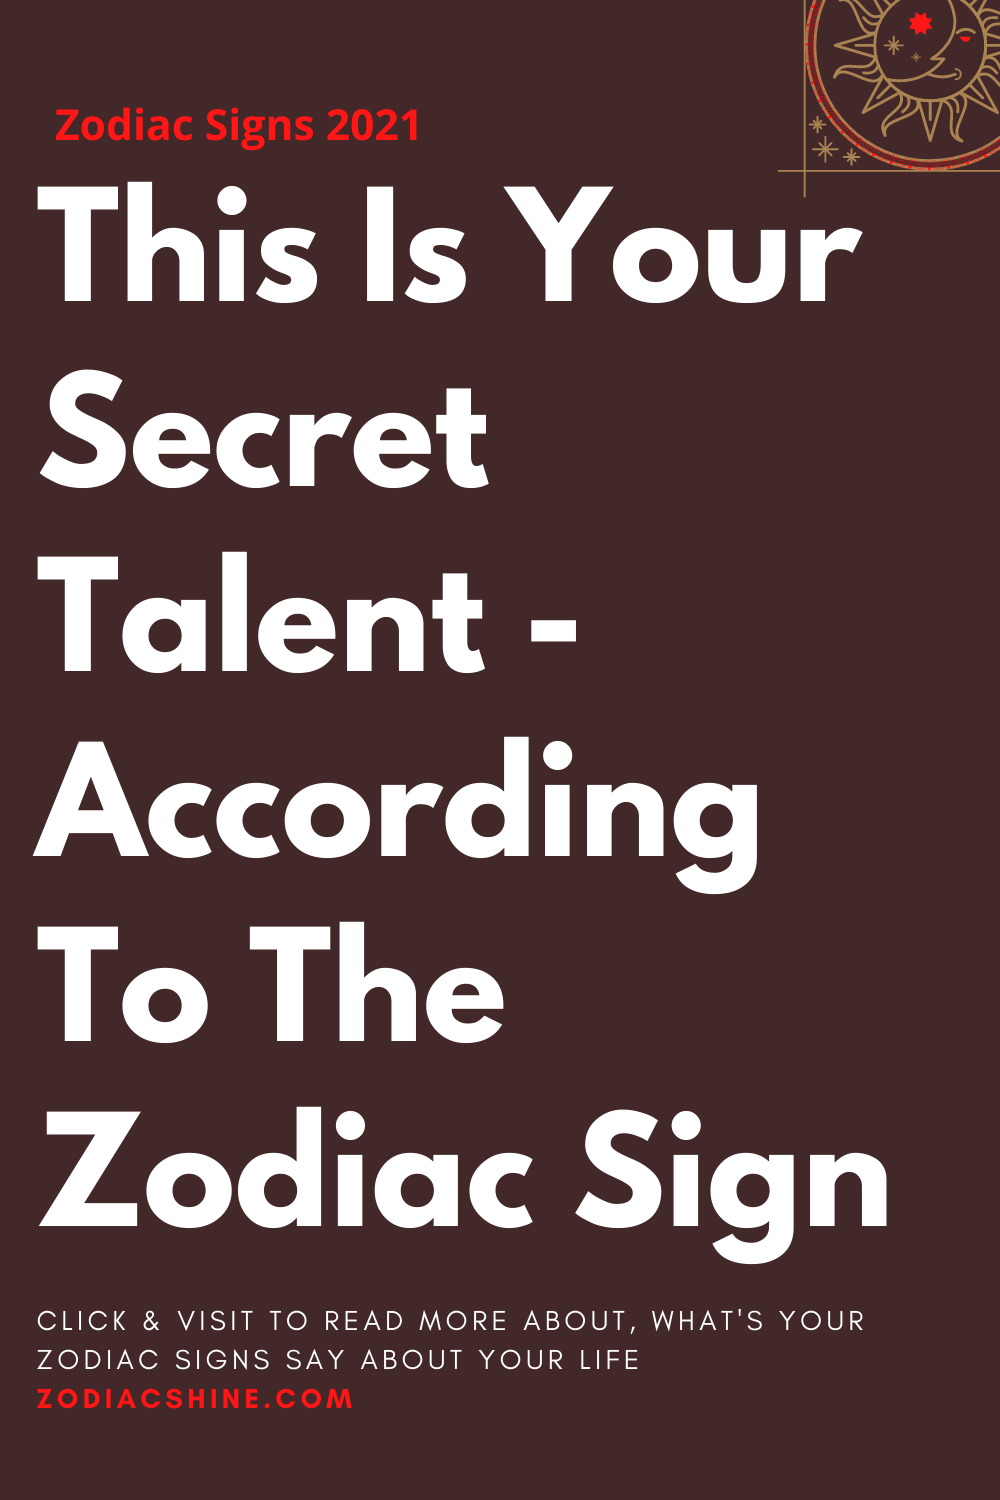 This Is Your Secret Talent - According To The Zodiac Sign